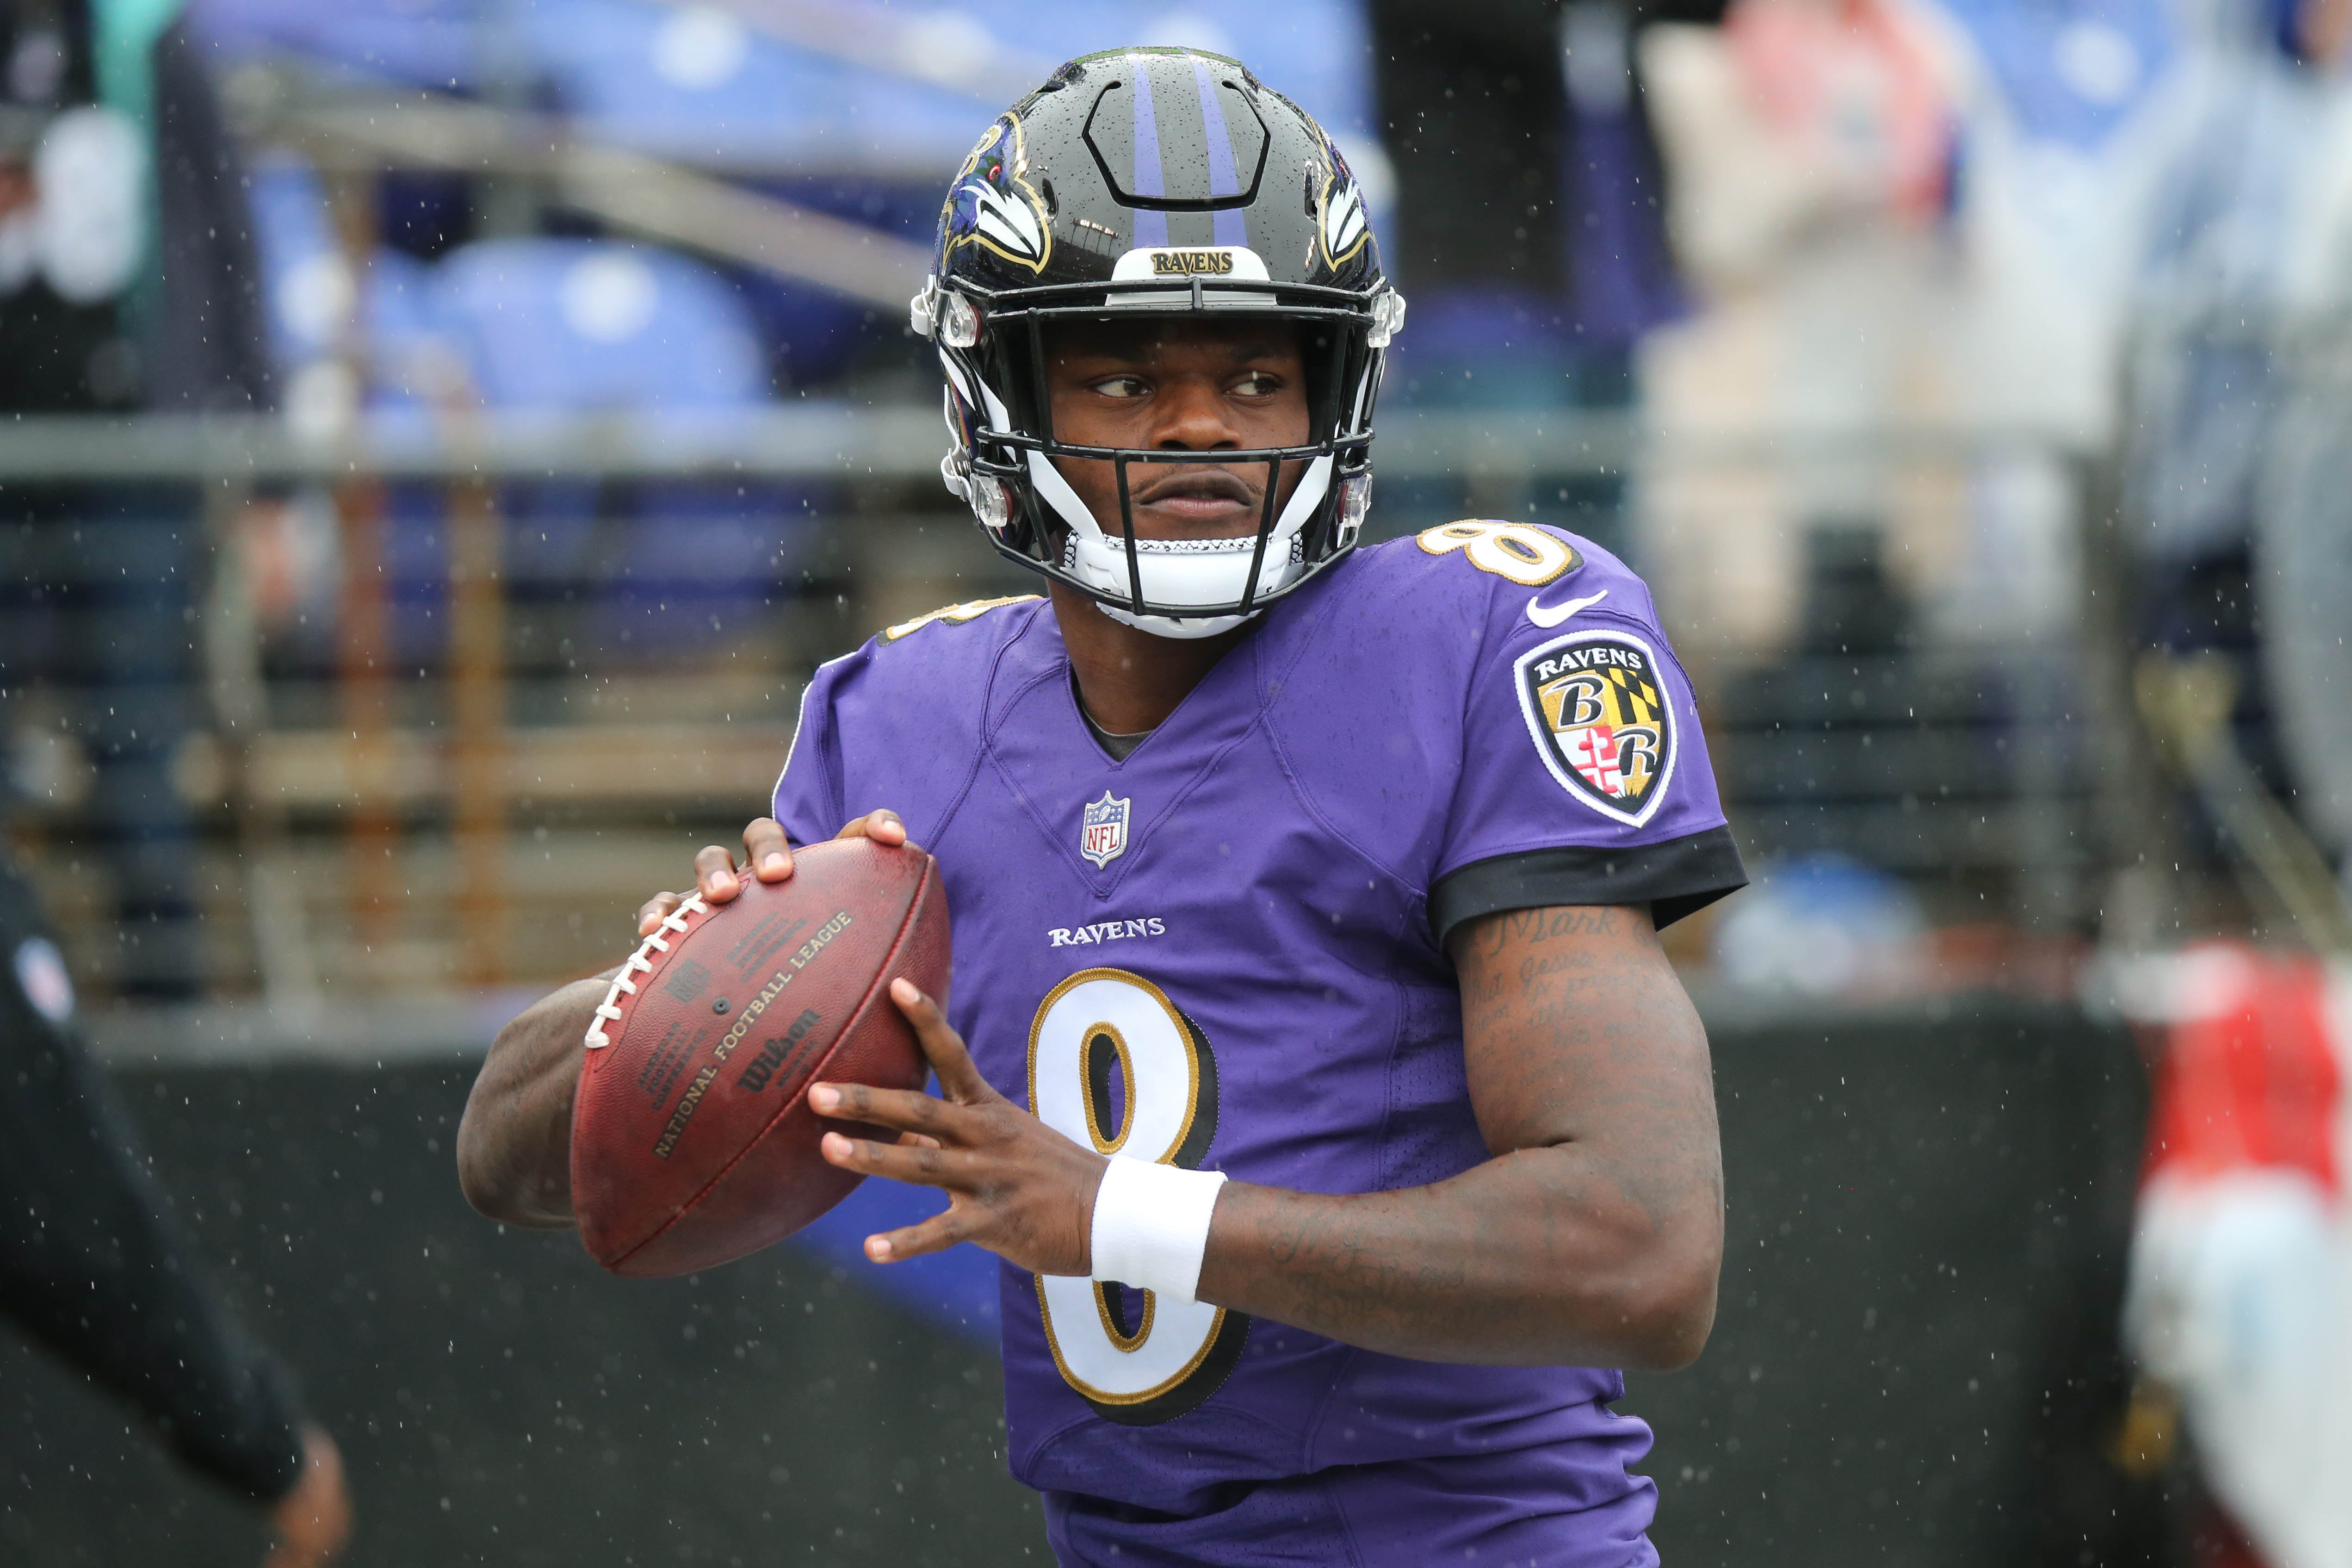 Lamar Jackson to start for Ravens in place of injured Joe Flacco